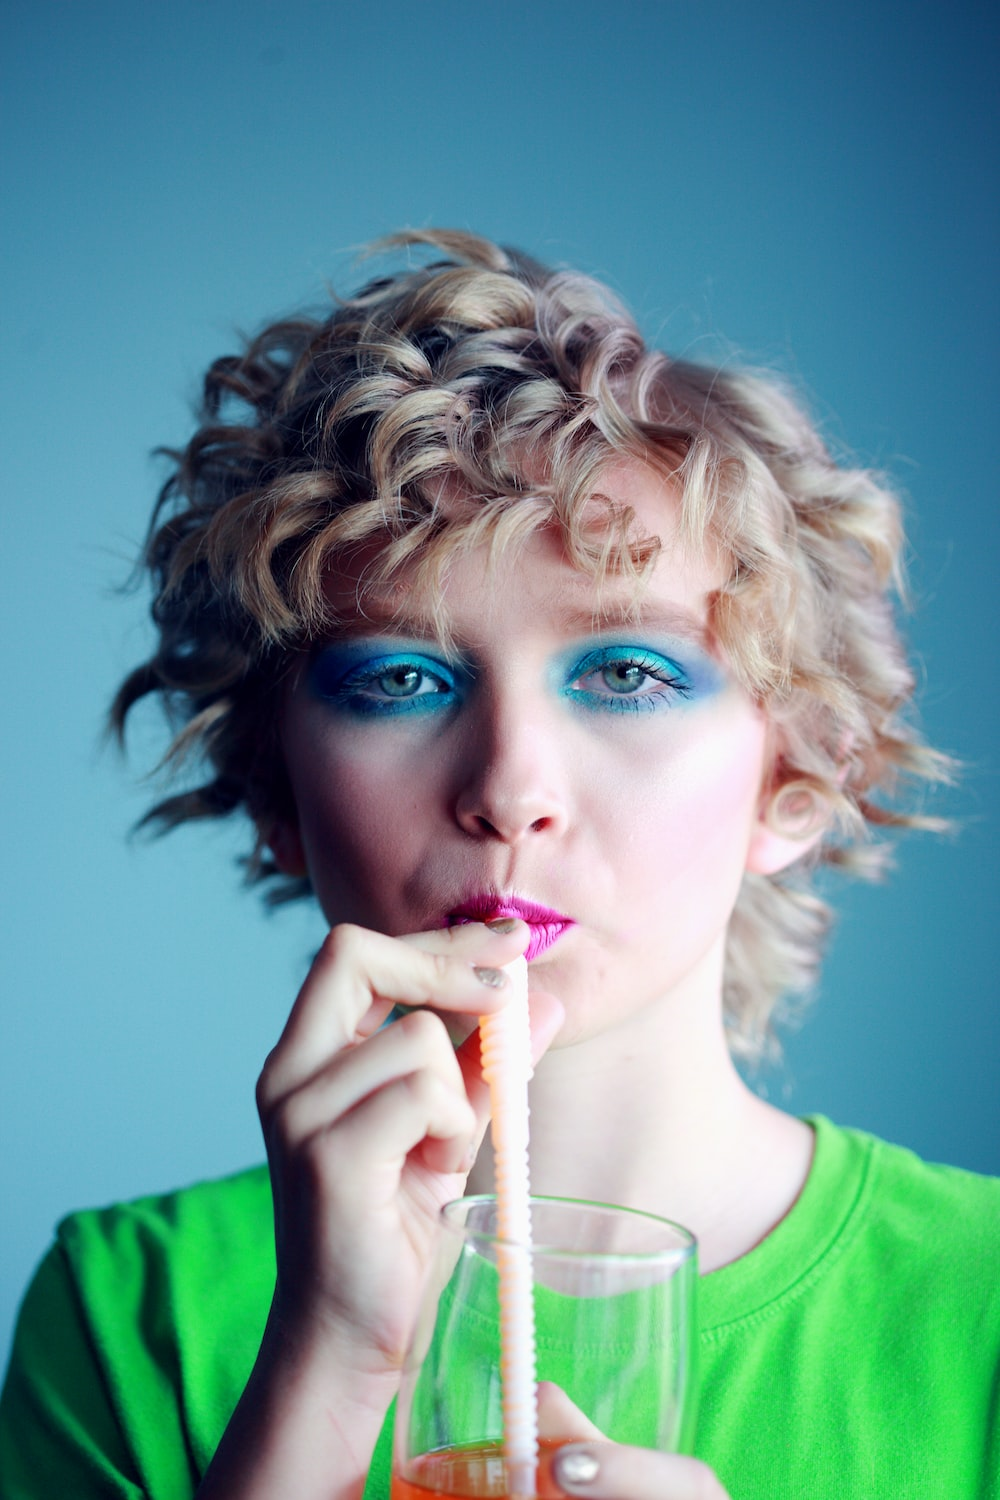 woman with blue eyemake up sipping beverage